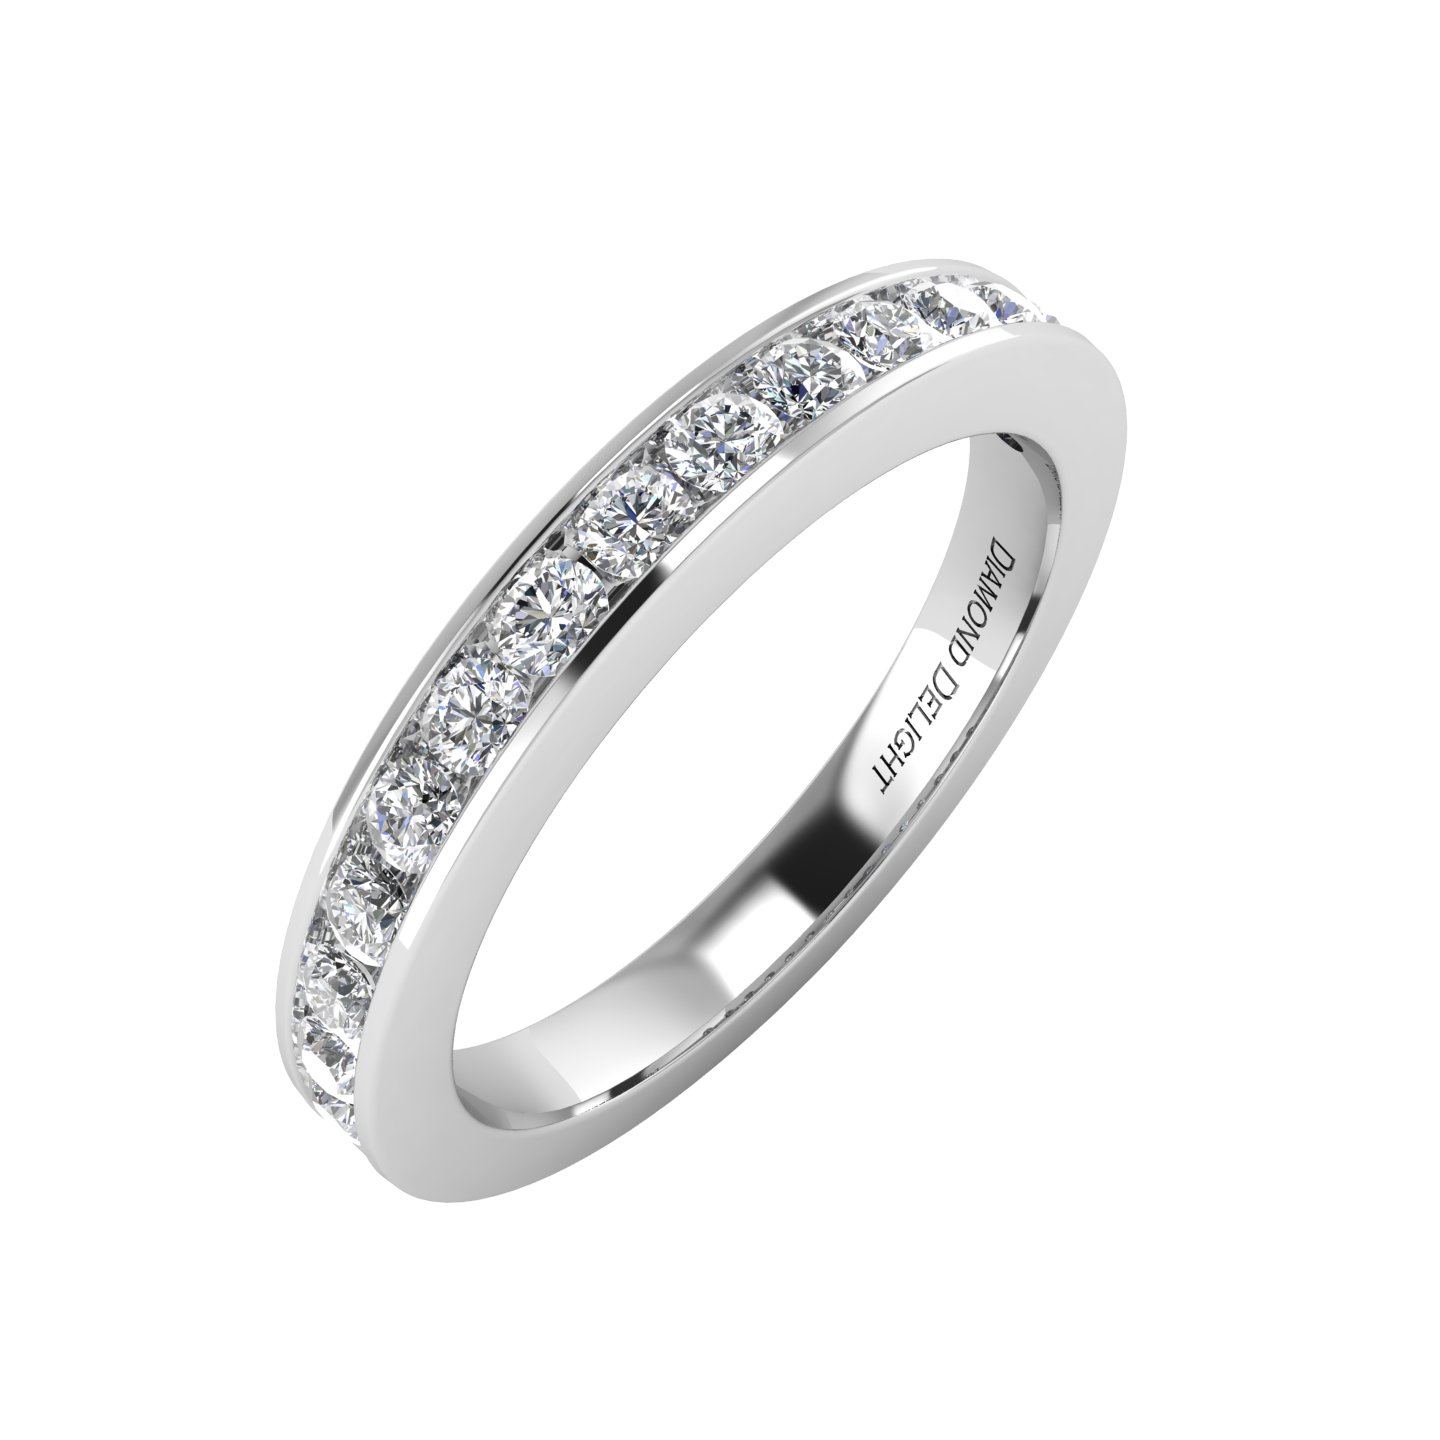 IGI Certified 14k White Gold Wedding/anniversary Diamond Band Ring (1/2 Carat)